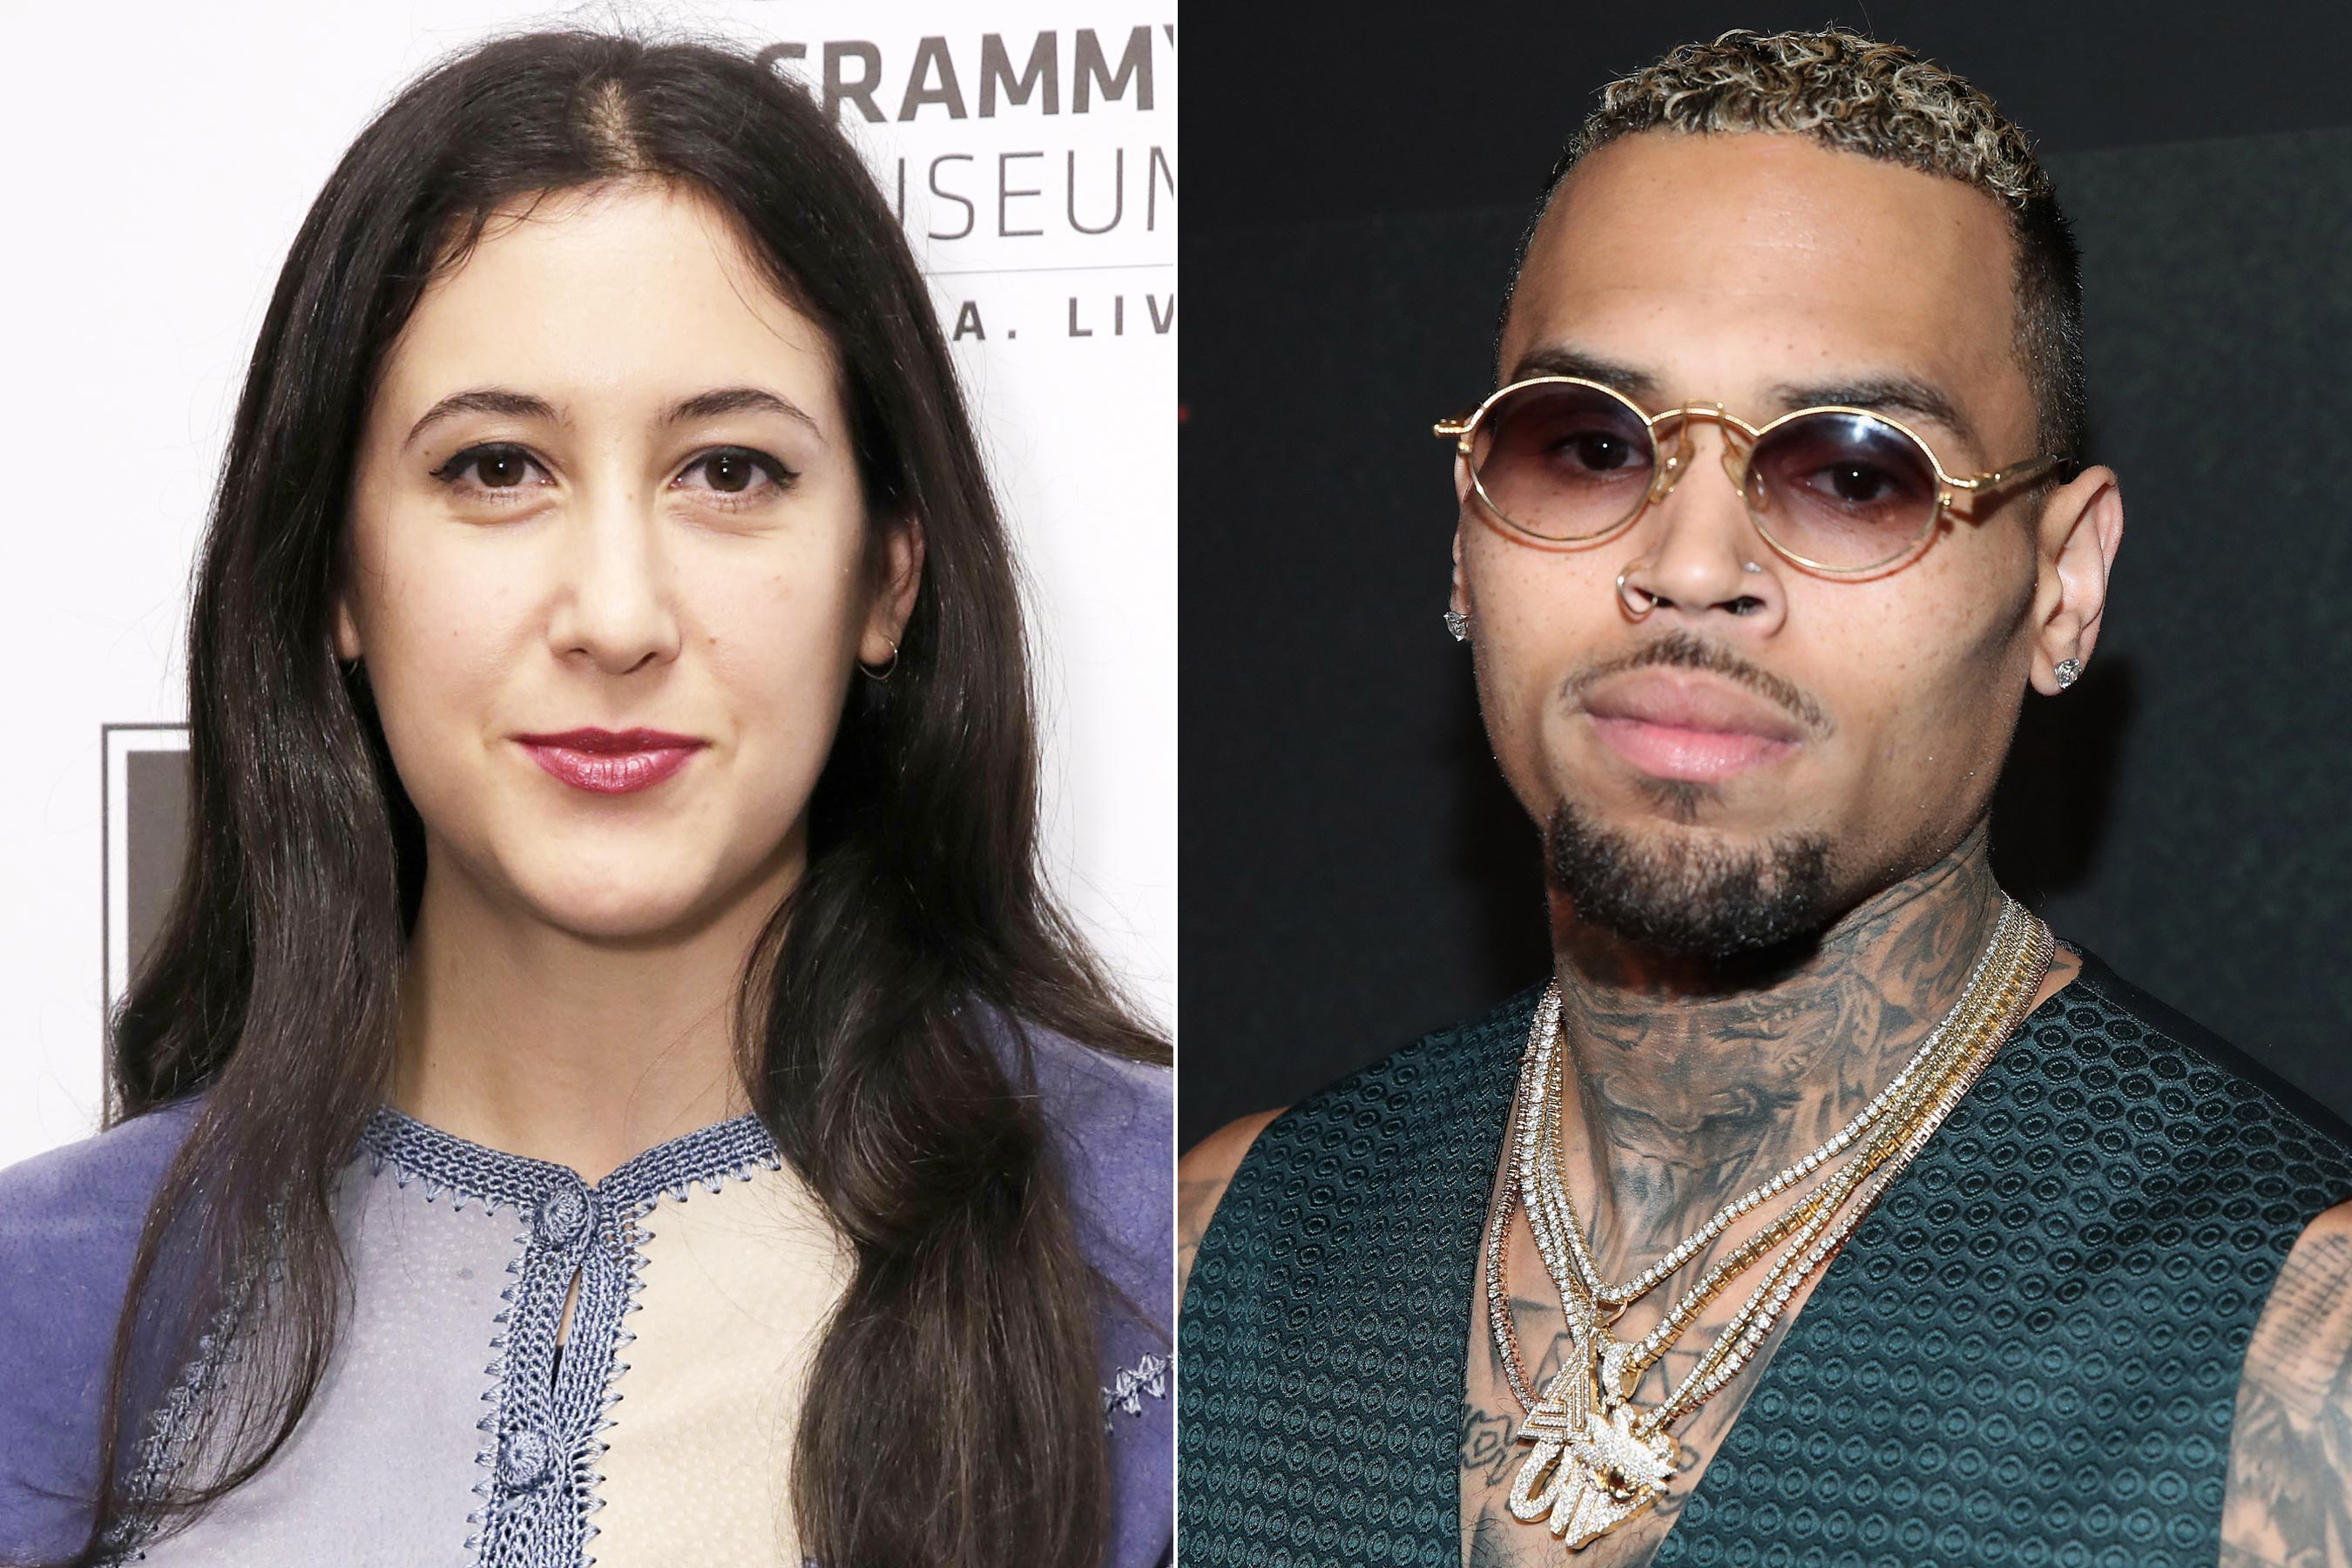 Vanessa Carlton slams Chris Brown for posting her song